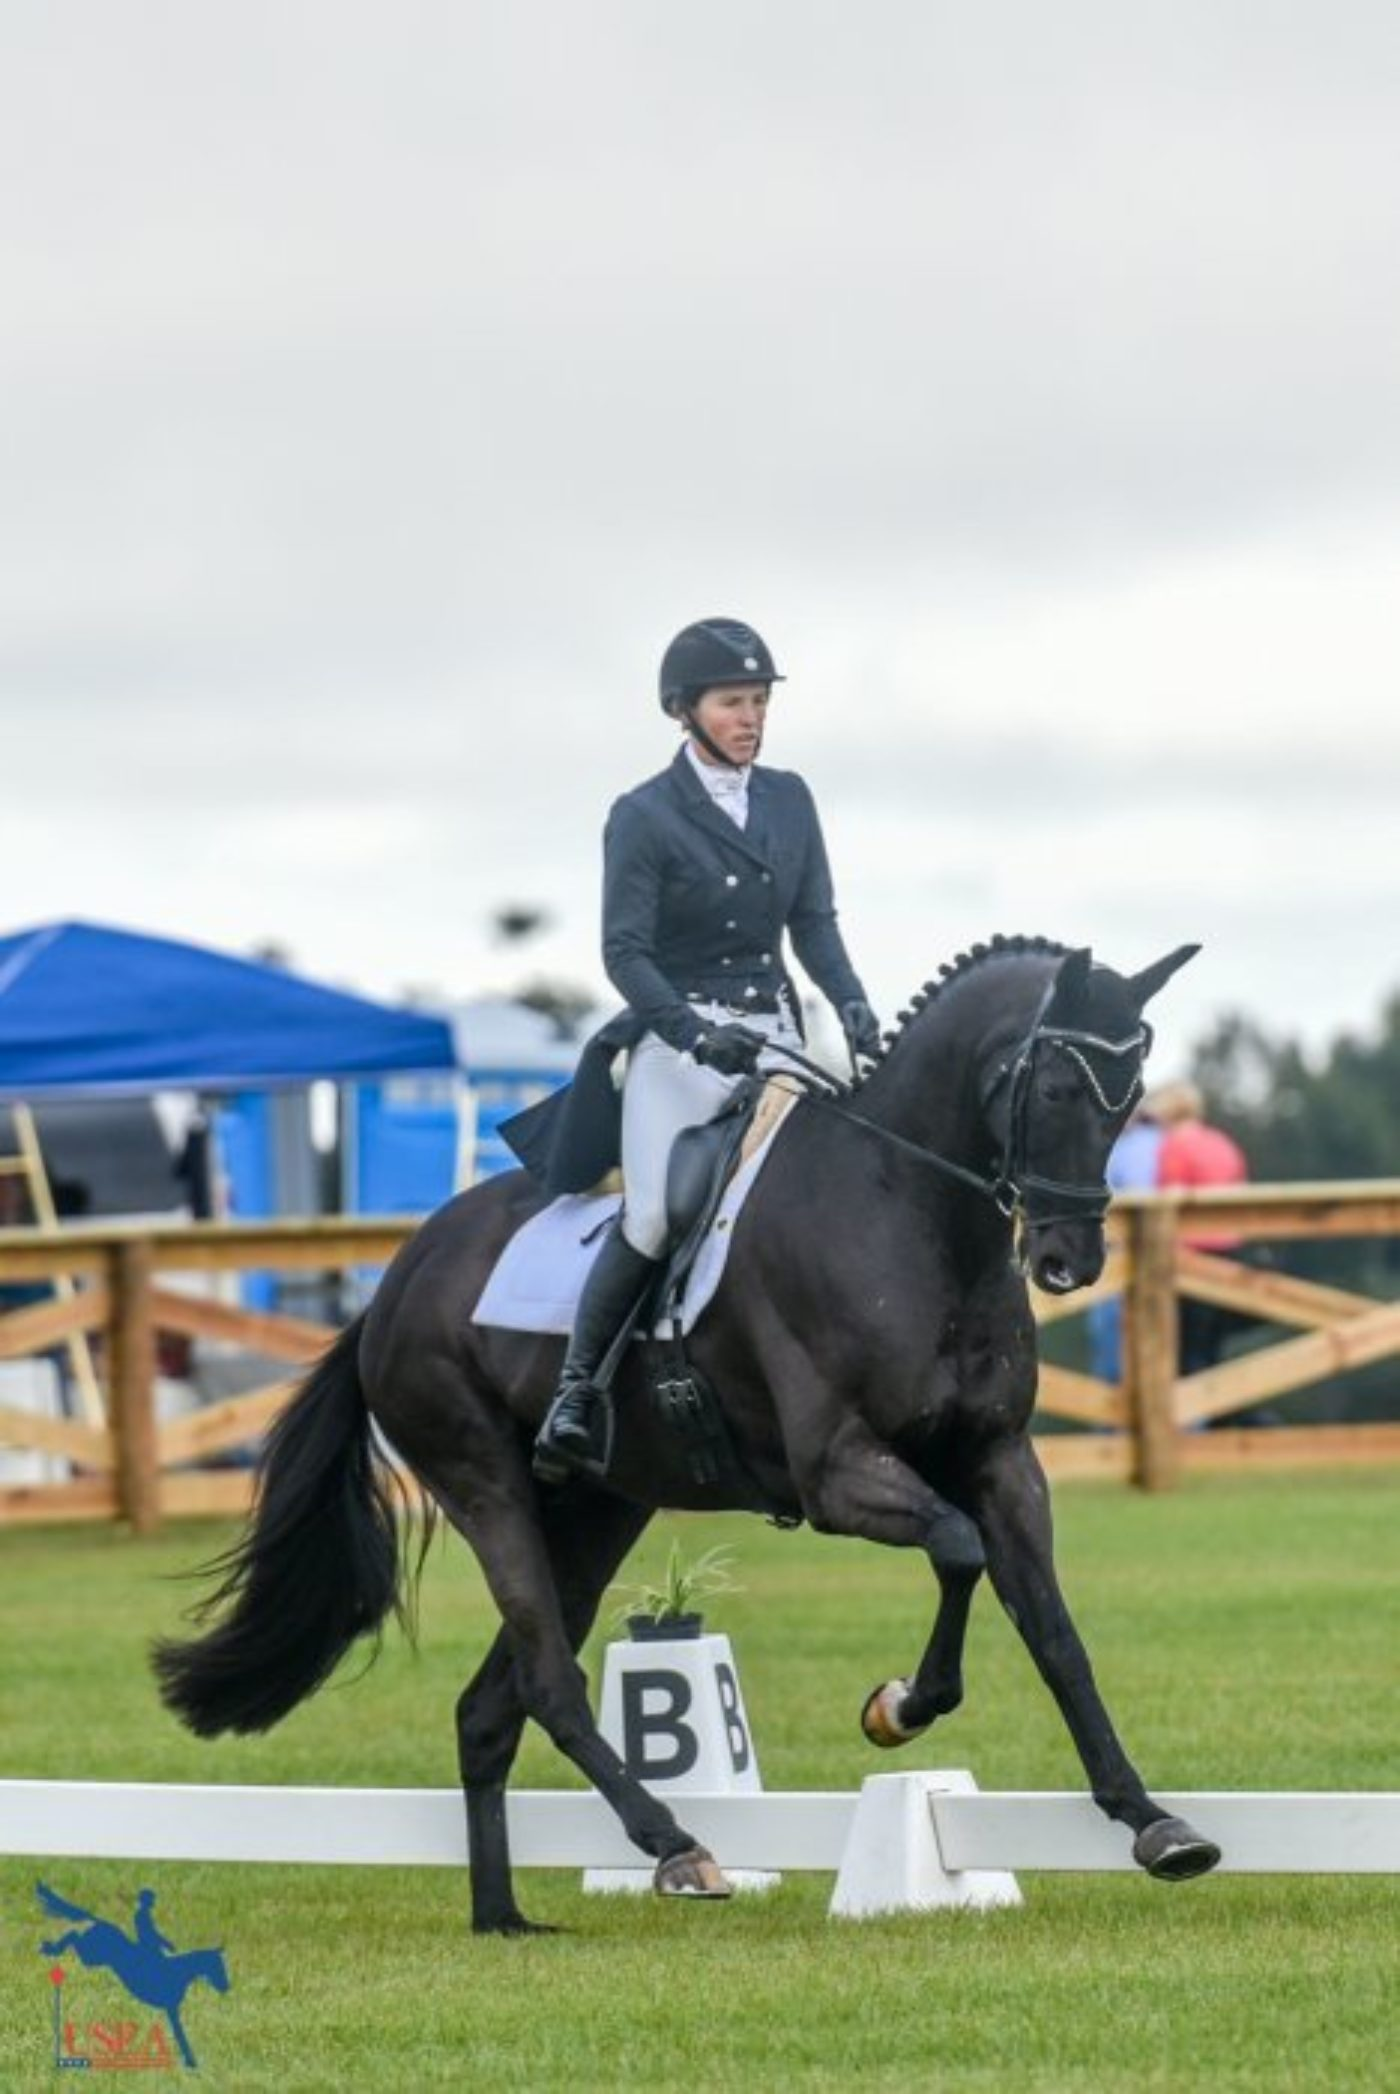 10th - Elisa Wallace and Simply Priceless - 38.0